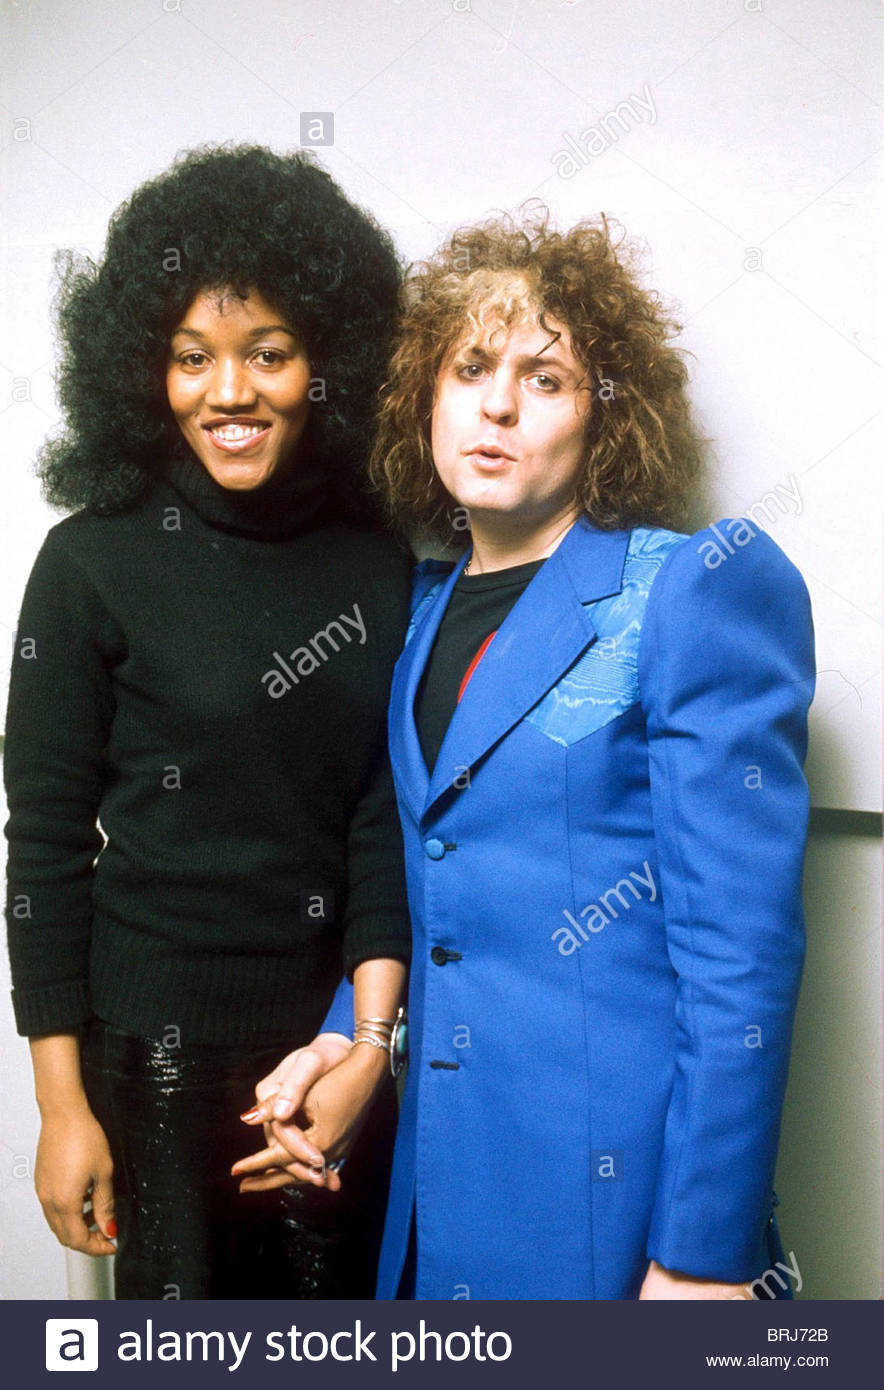 http://c8.alamy.com/comp/BRJ72B/marc-bolan-and-gloria-jones-BRJ72B.jpg